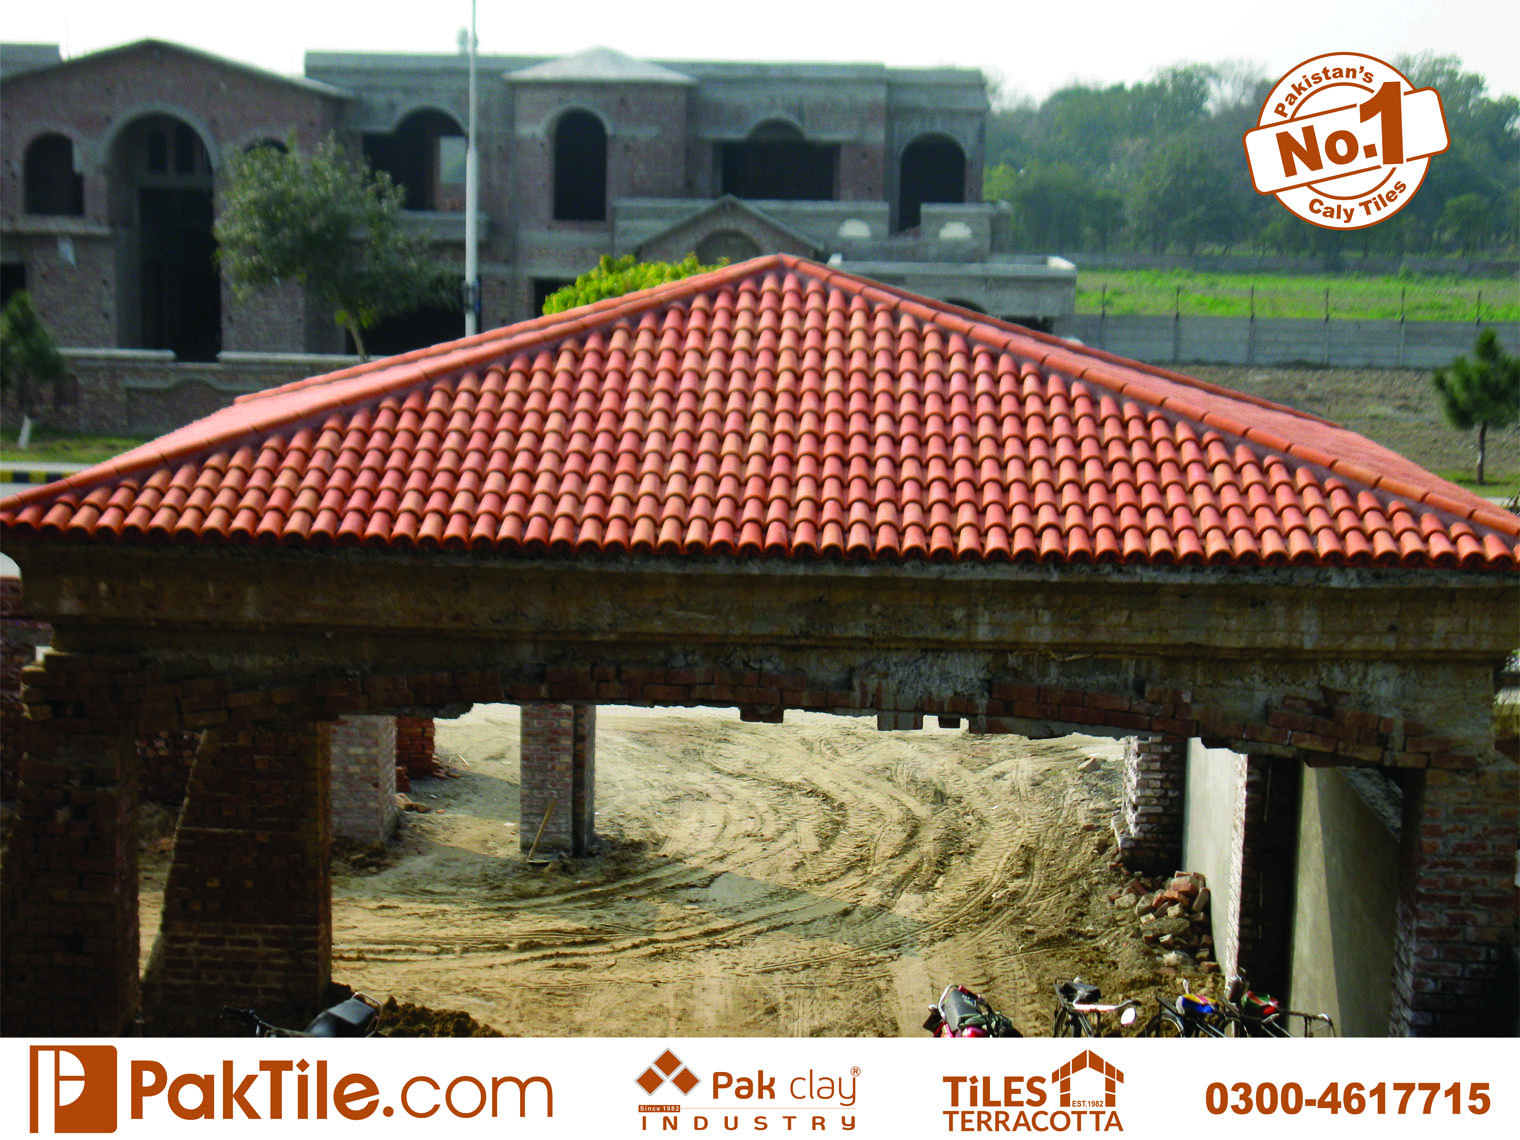 24 Buy online shop terracotta bricks roofing shingles products tiles low prices in karachi islamabad